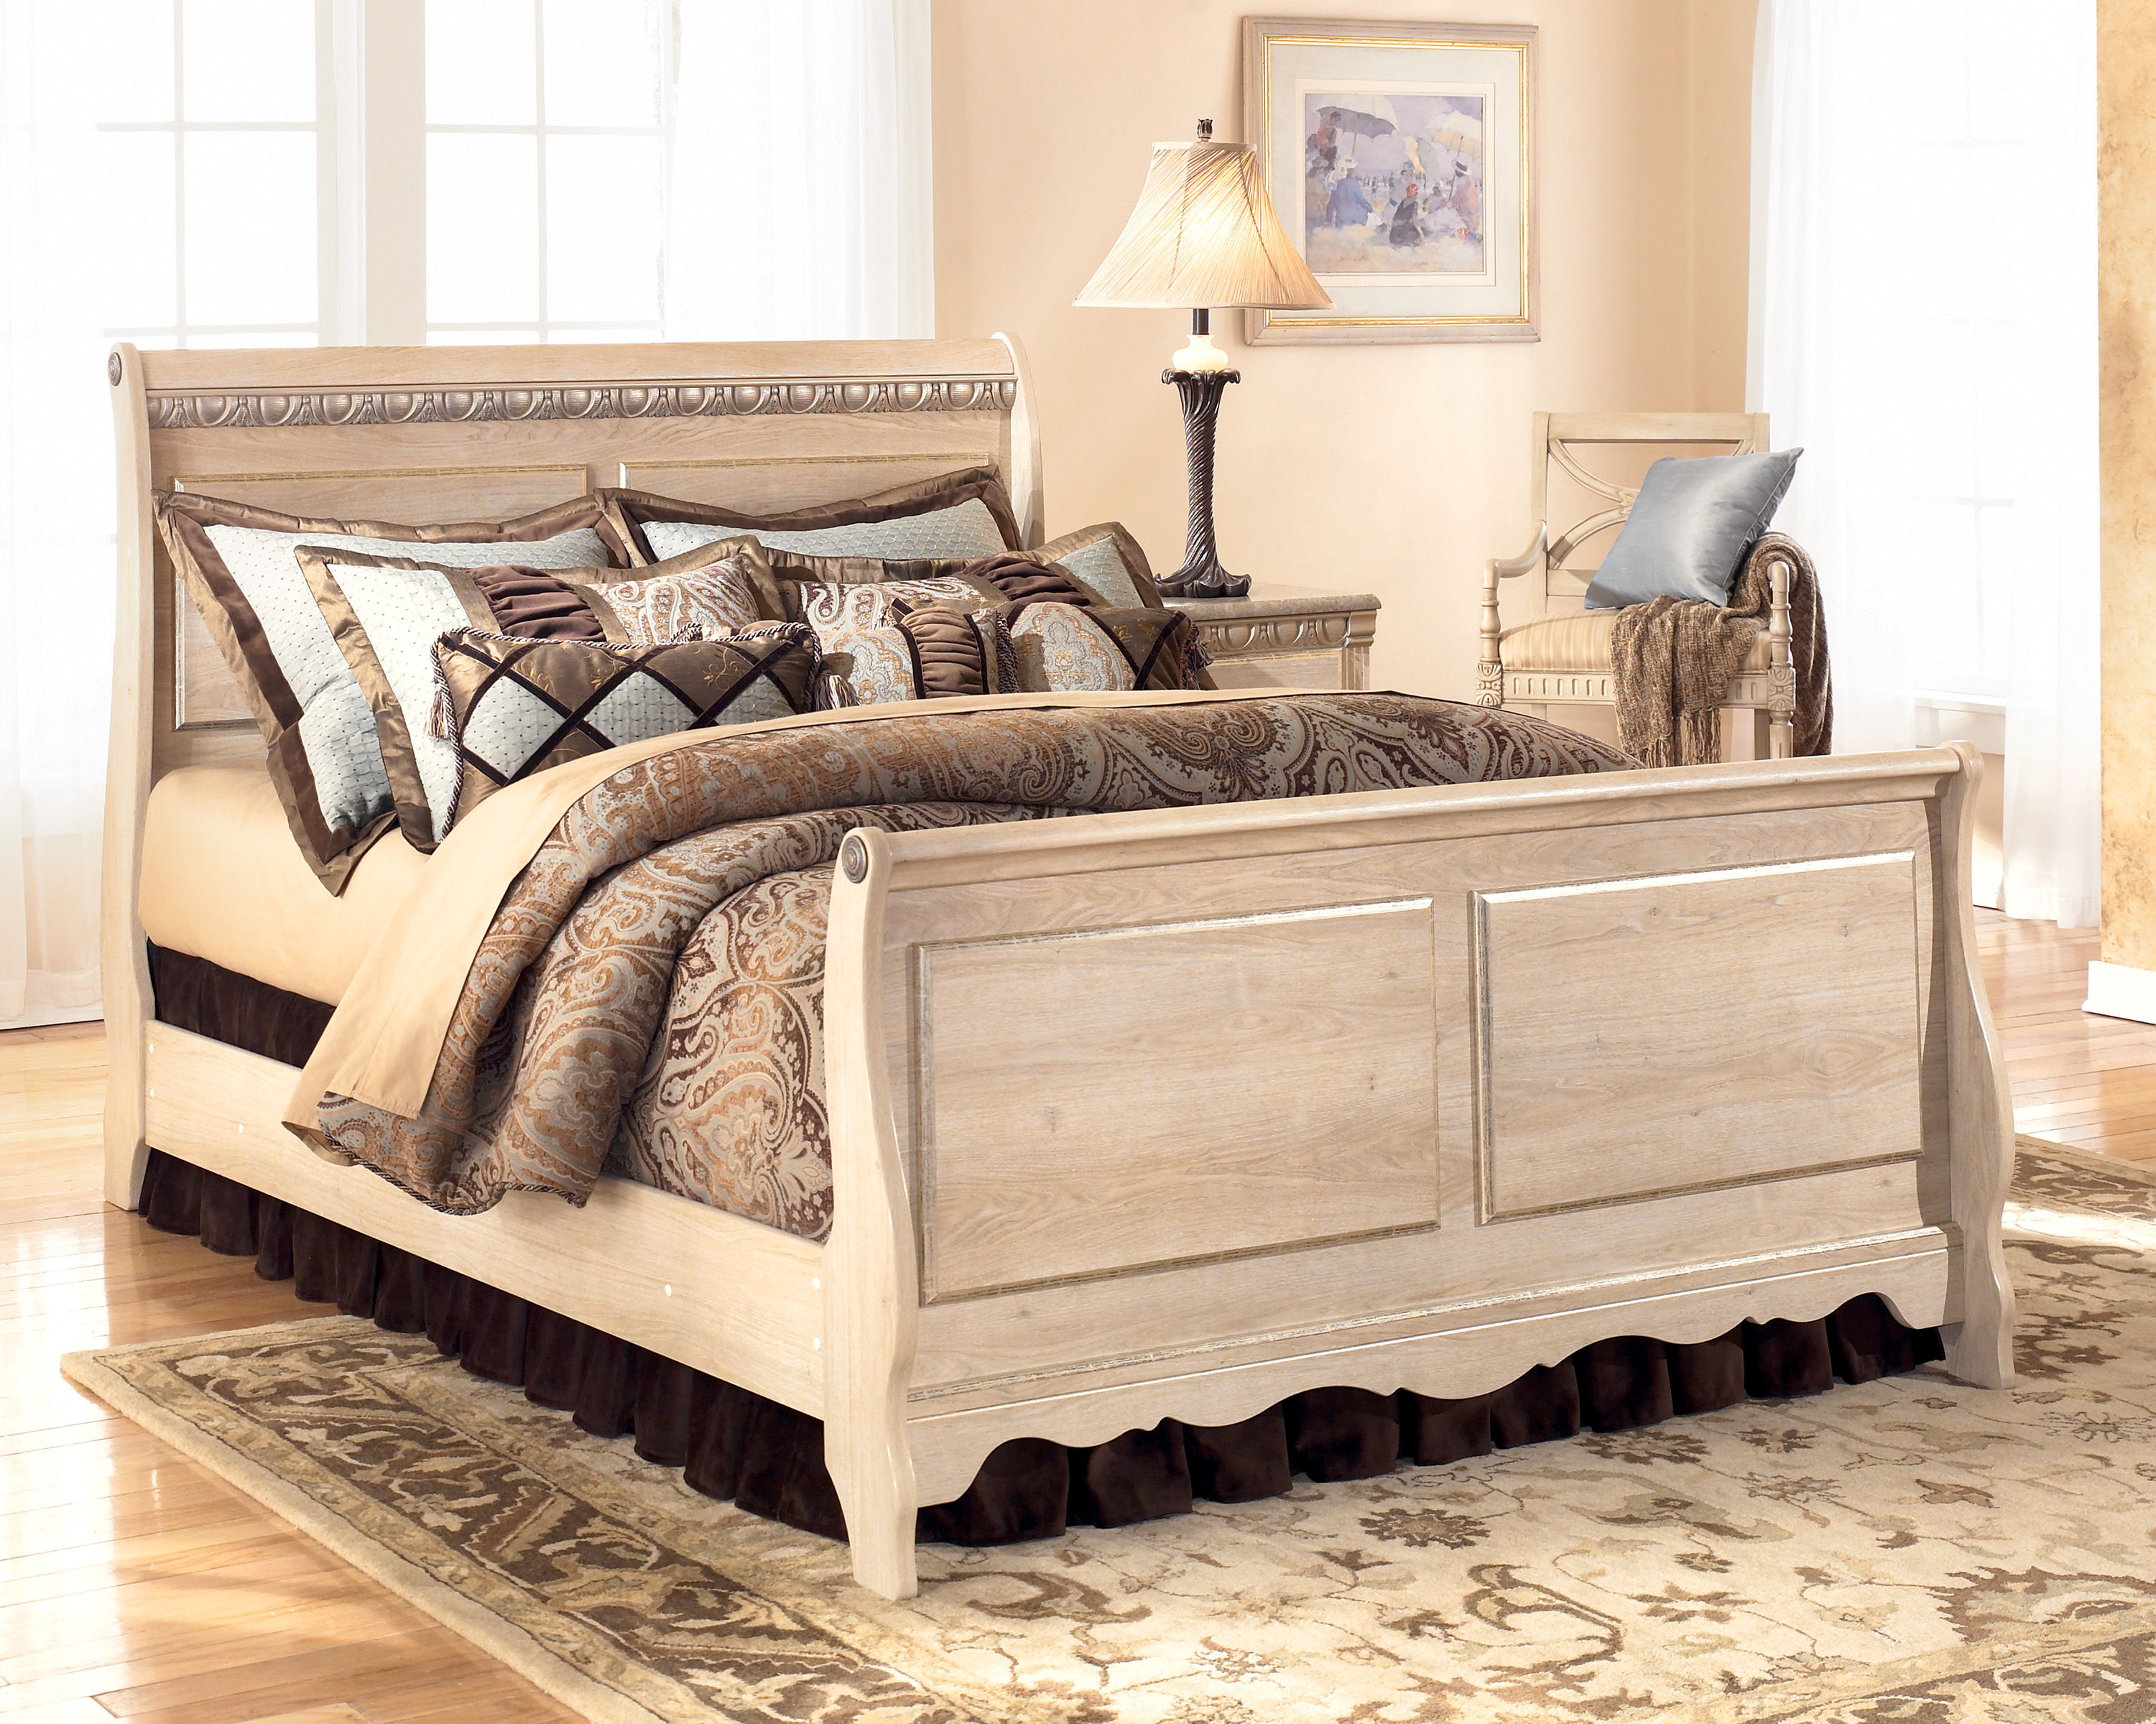 Silverglade Queen Sleigh Bed The Classy Home